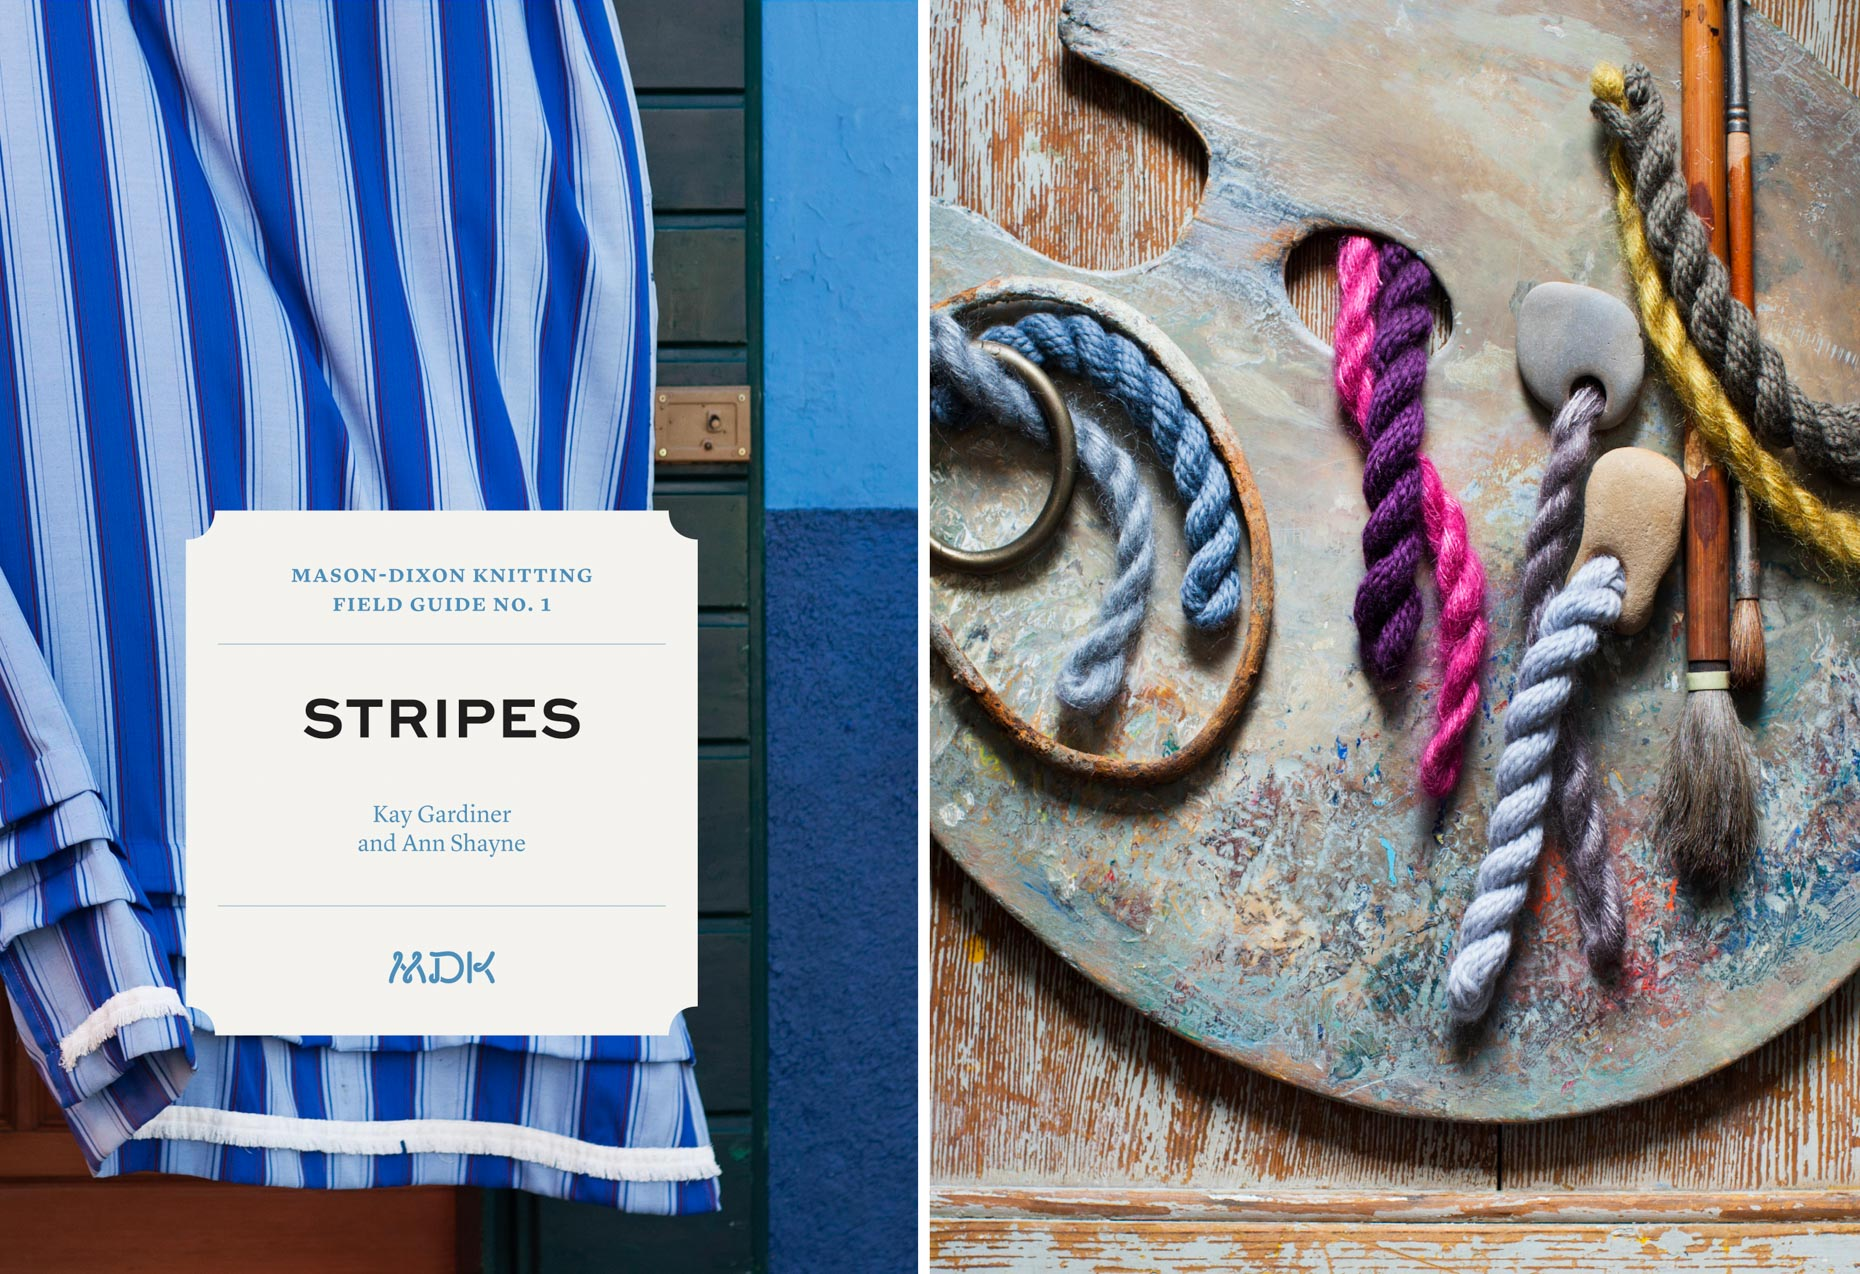 Remington_MDK Field Guide - Stripes1